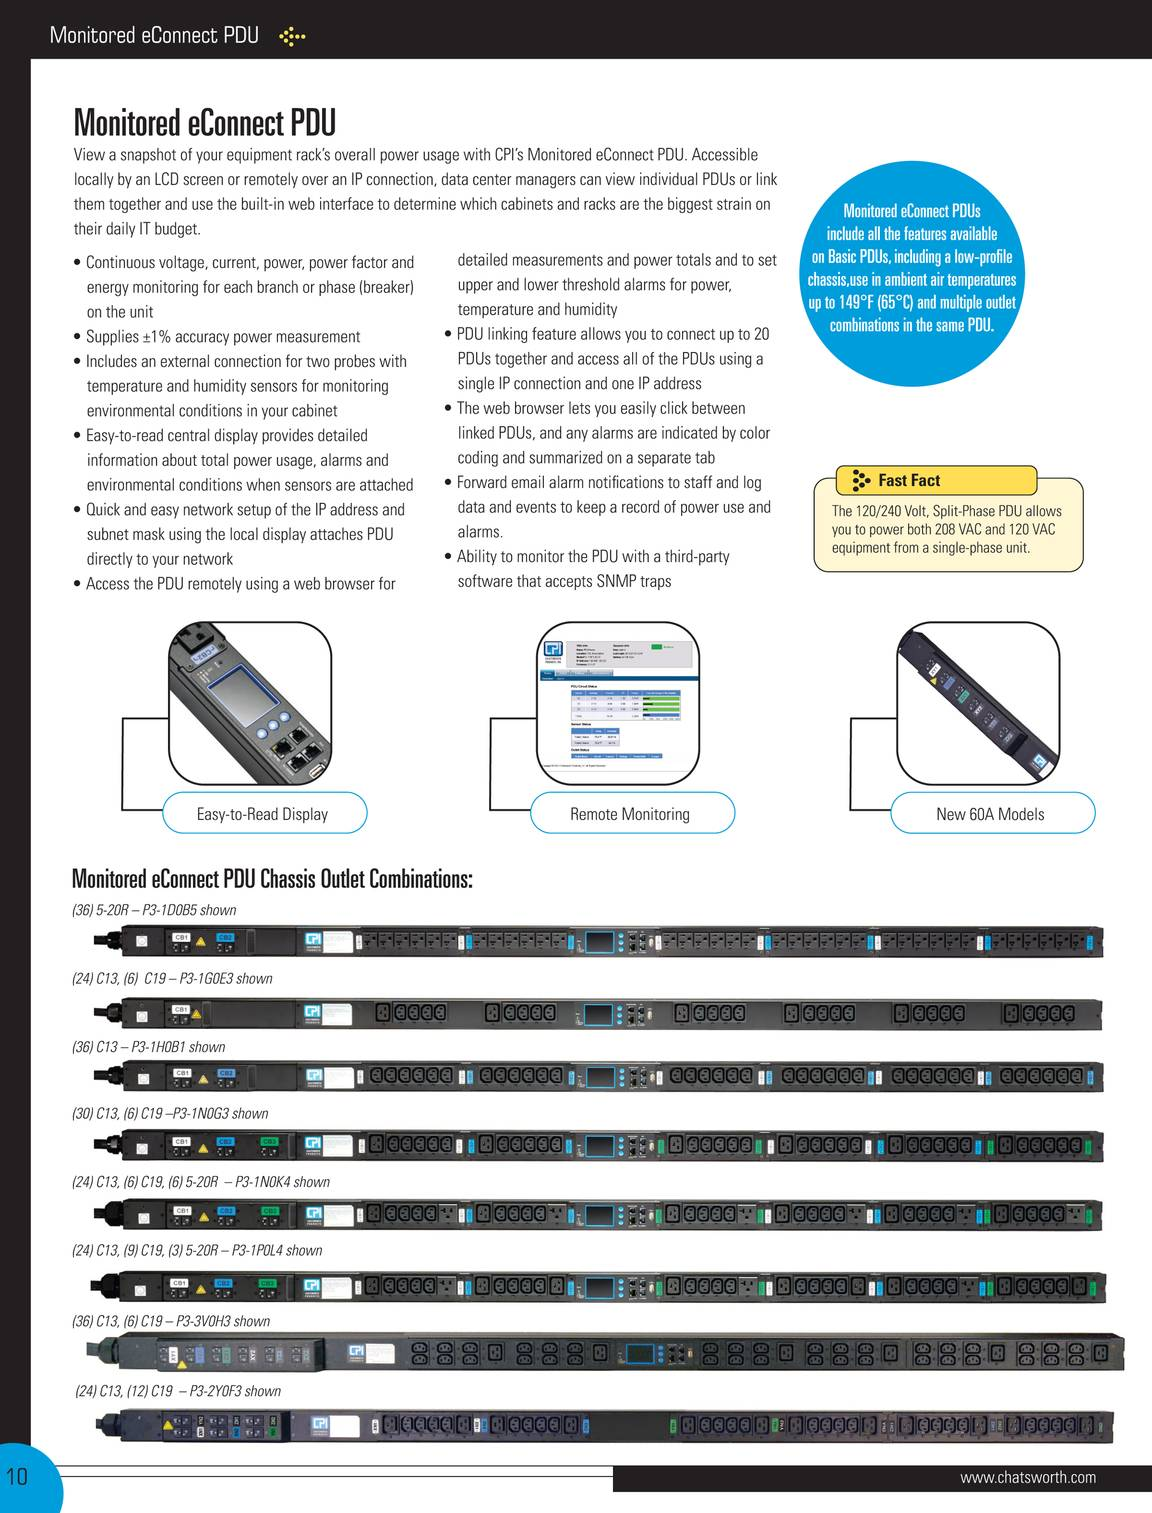 Chatsworth CPI eConnect Pro Switched PDU 208V 24-Outlet C13 C19 L6-1F0C3